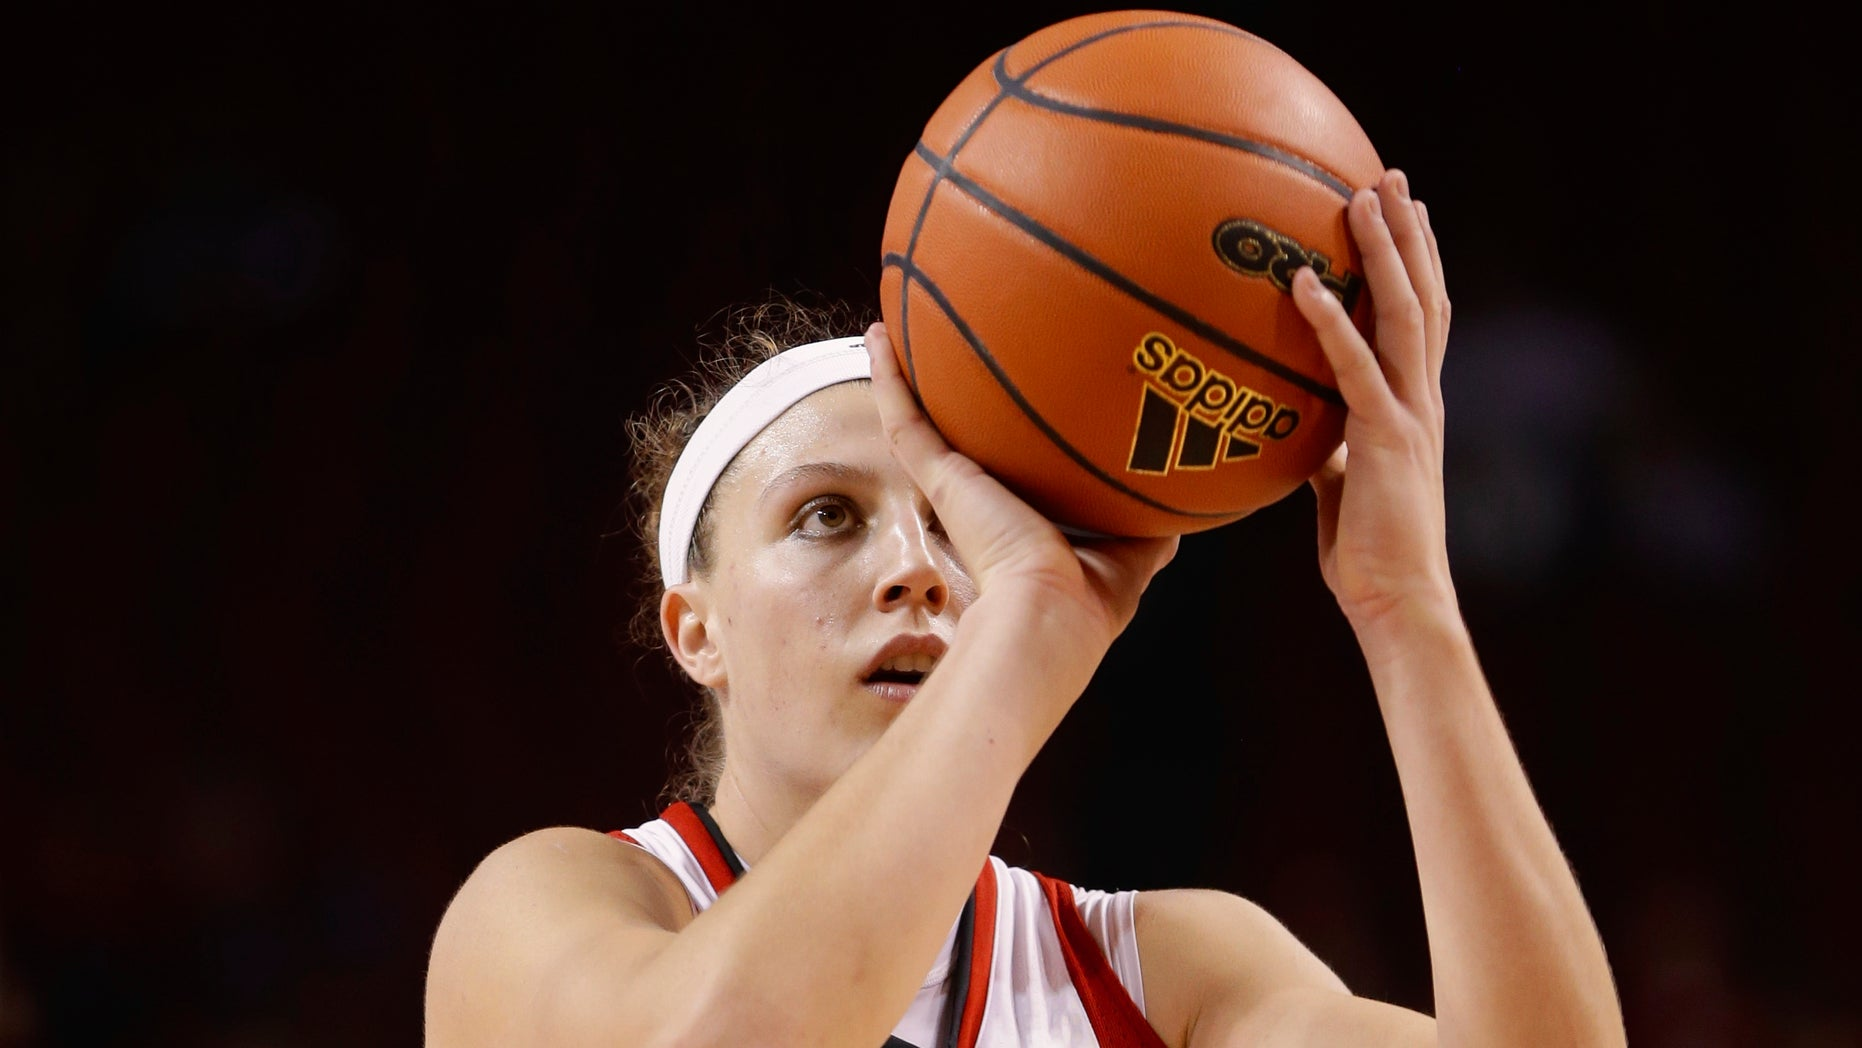 FILE -  In this Nov. 27, 2013 file photo, Nebraska's Jordan Hooper shoots in an NCAA college basketball game against UMass-Lowell in Lincoln, Neb. Hooper is on the verge scoring her 2,000th career point for 18th-ranked Nebraska. If she scores 10 points against Minnesota on Thursday, Jan. 16, 2014, she'll become the fourth player in program history to achieve the milestone. (AP Photo/Nati Harnik, File)